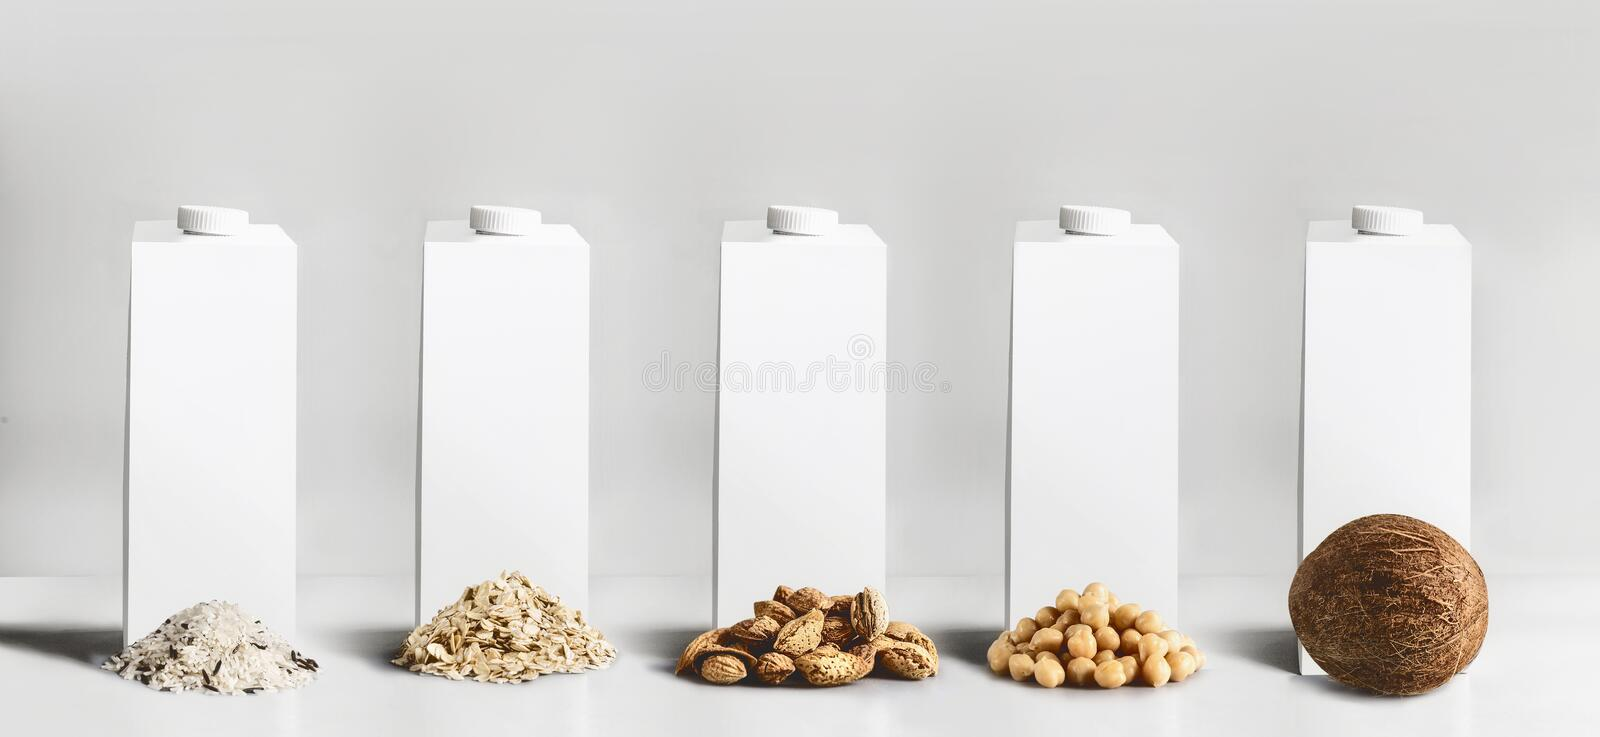 Vegan milk concept. White blank packaging, tetra-pack, packet cartons with mock up to branding or design with best vegan milk royalty free stock images